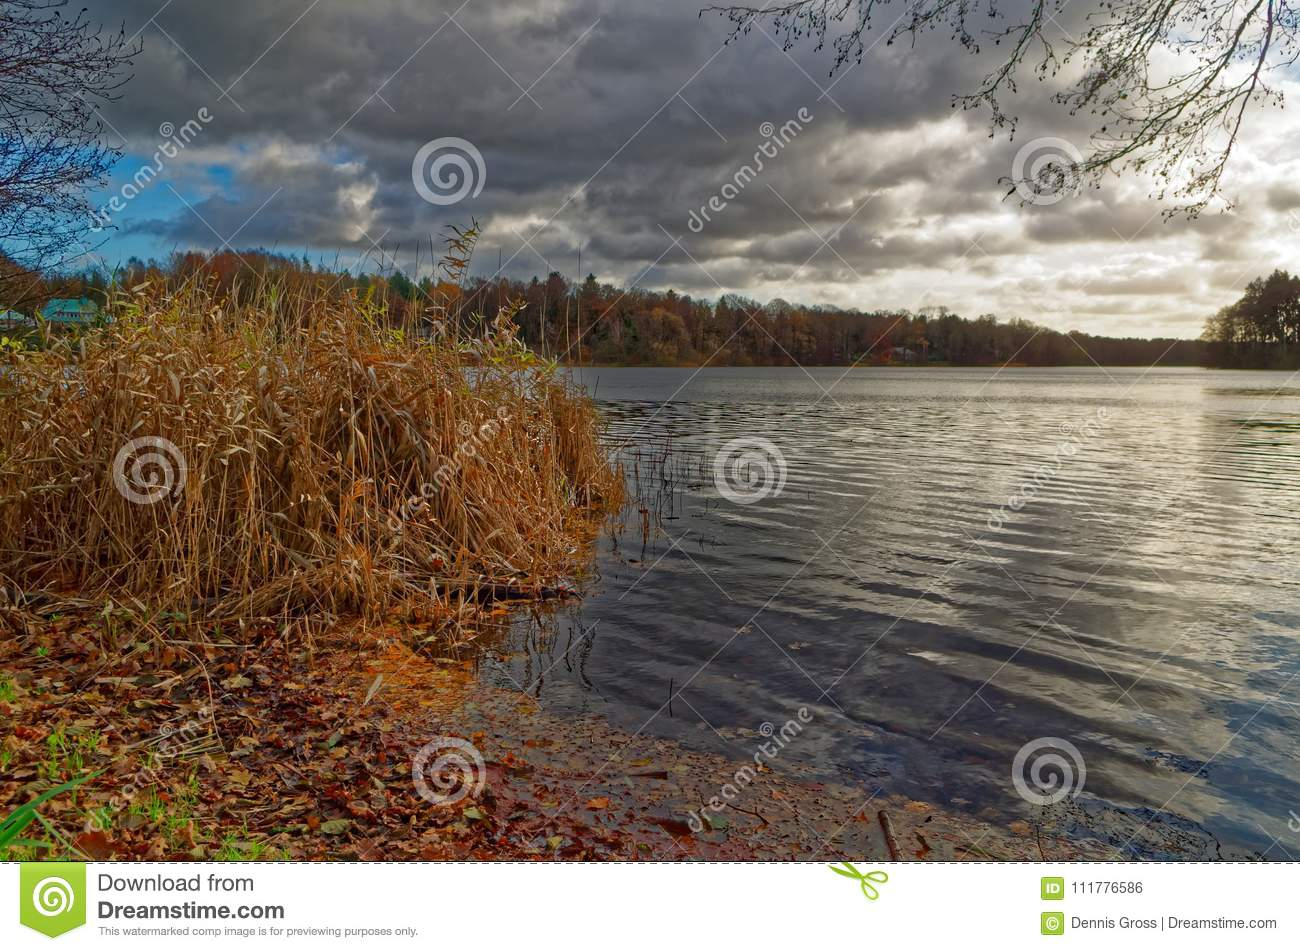 Lake under dramatic cloudy sky and brawn reed in foreground in a winter